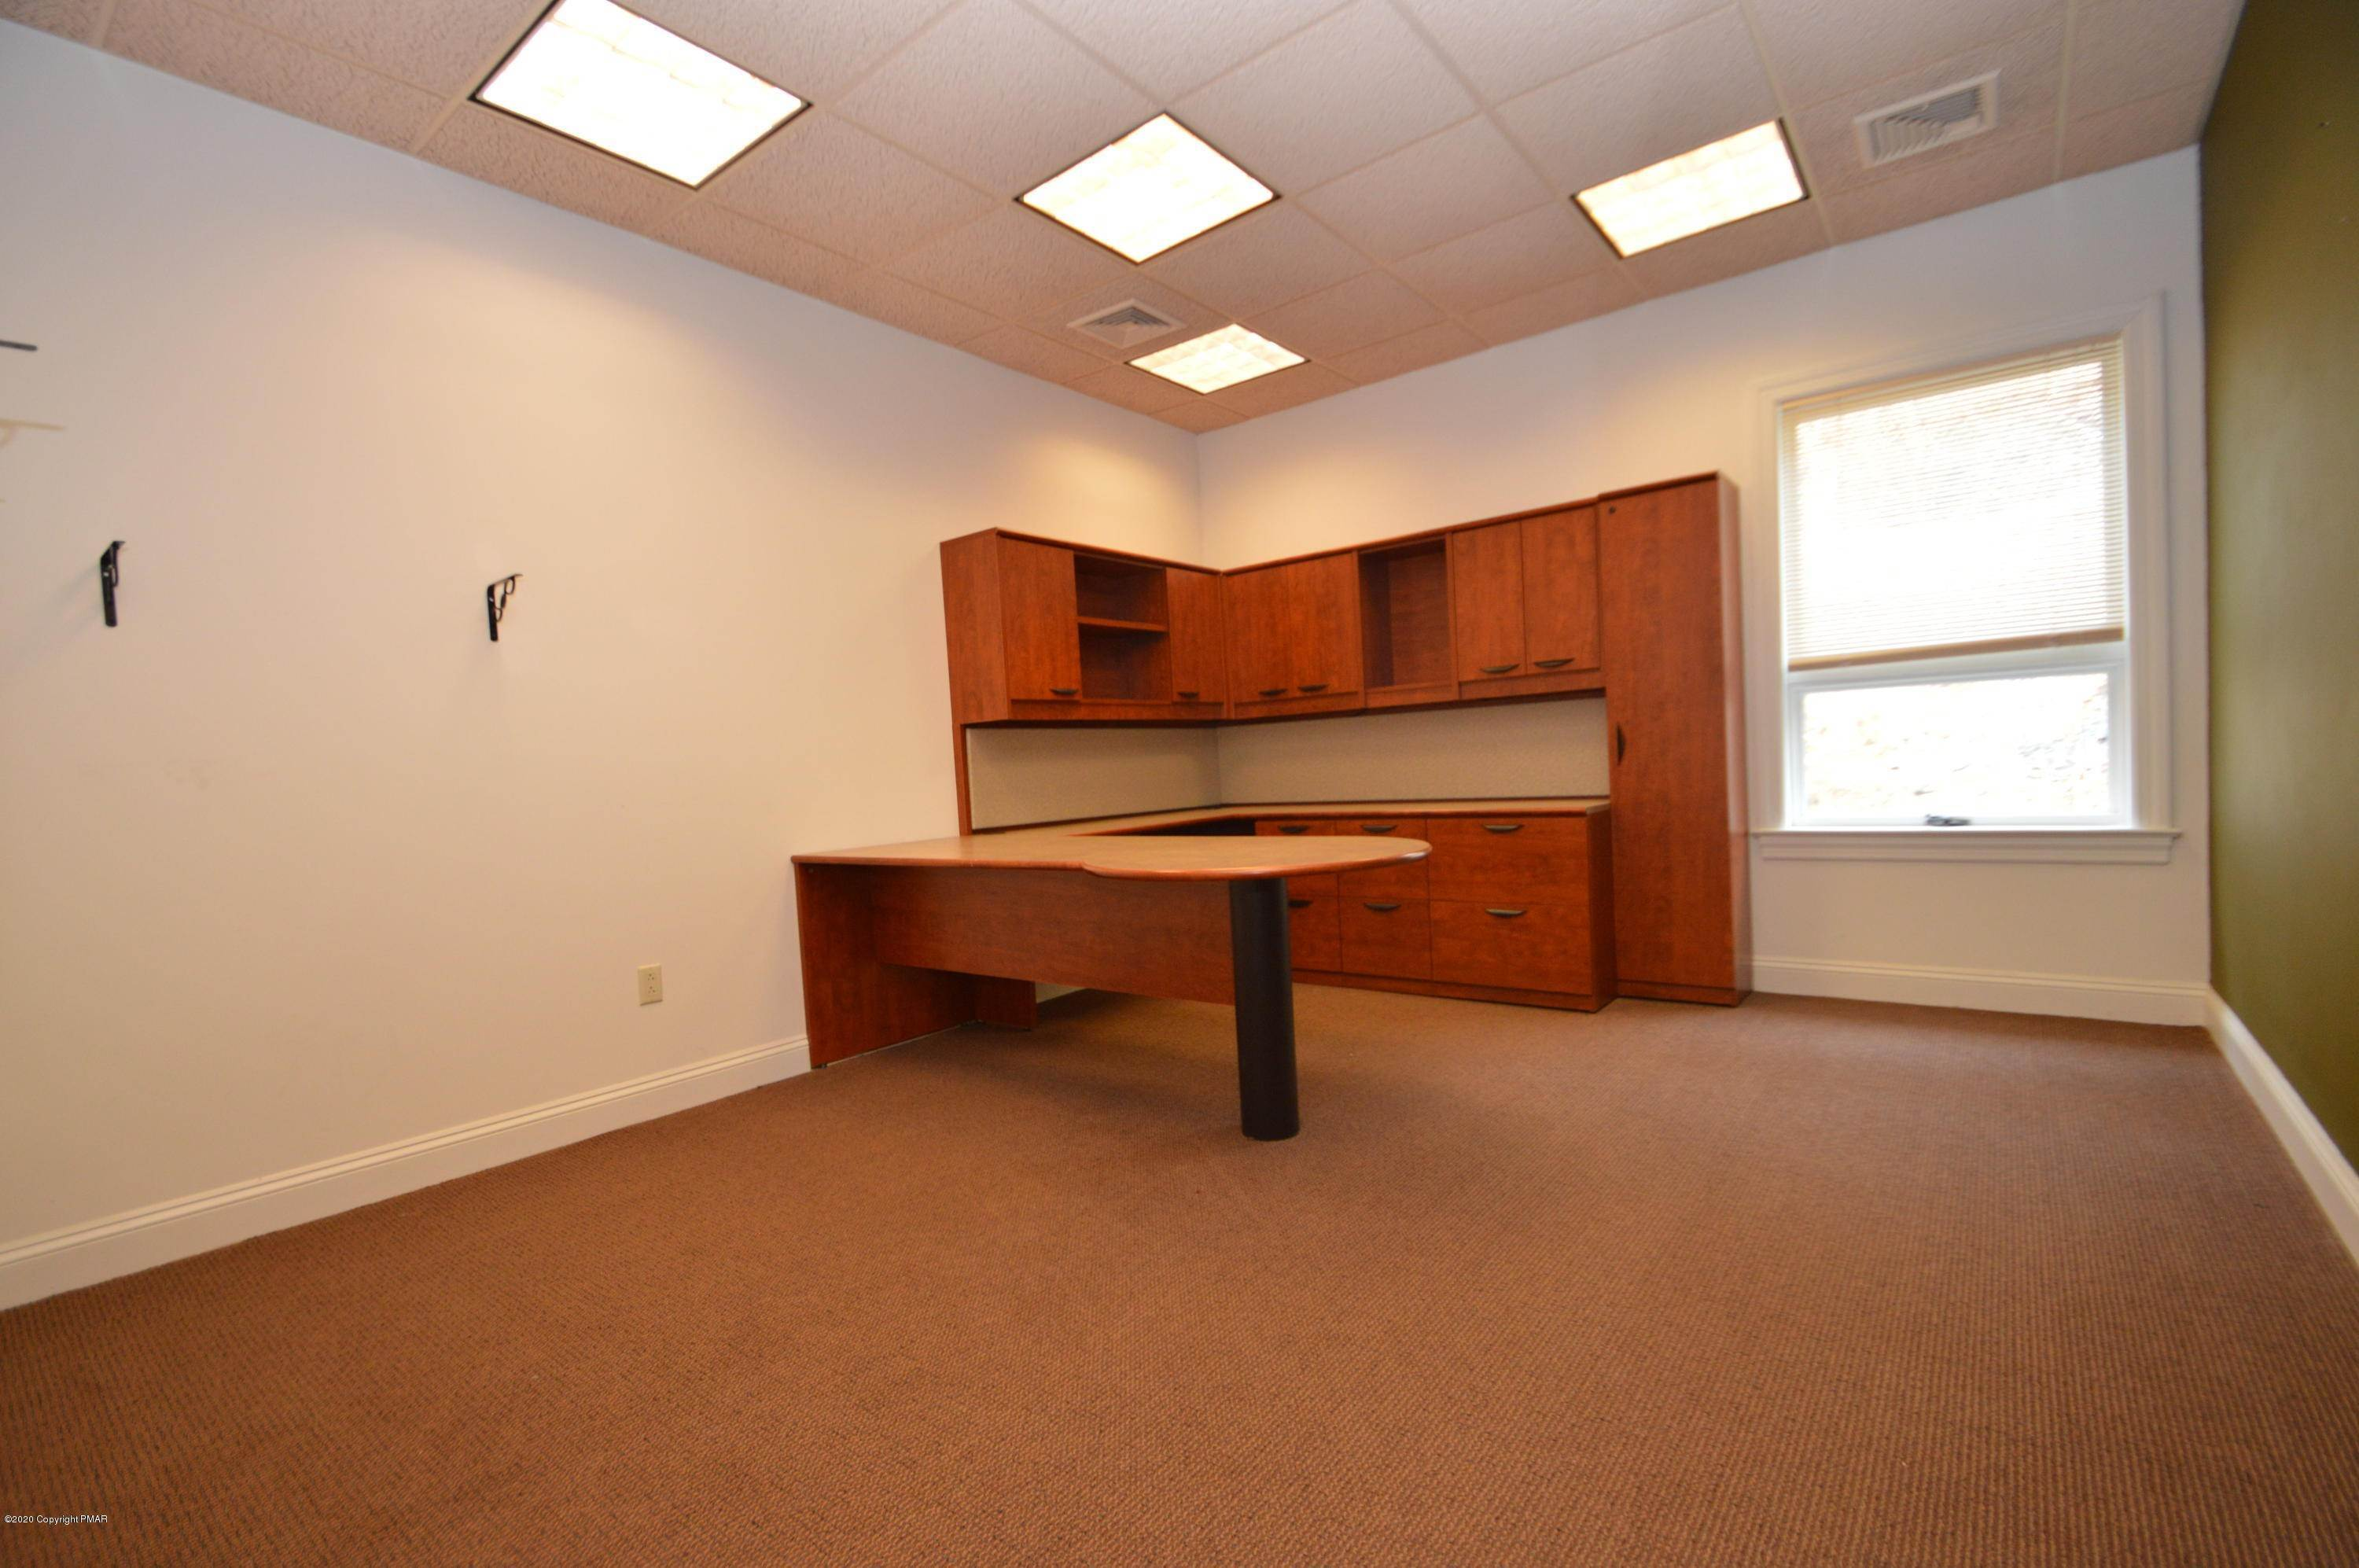 3. Commercial for Sale at 528 Seven Bridge Rd Suite 114 East Stroudsburg, Pennsylvania 18301 United States